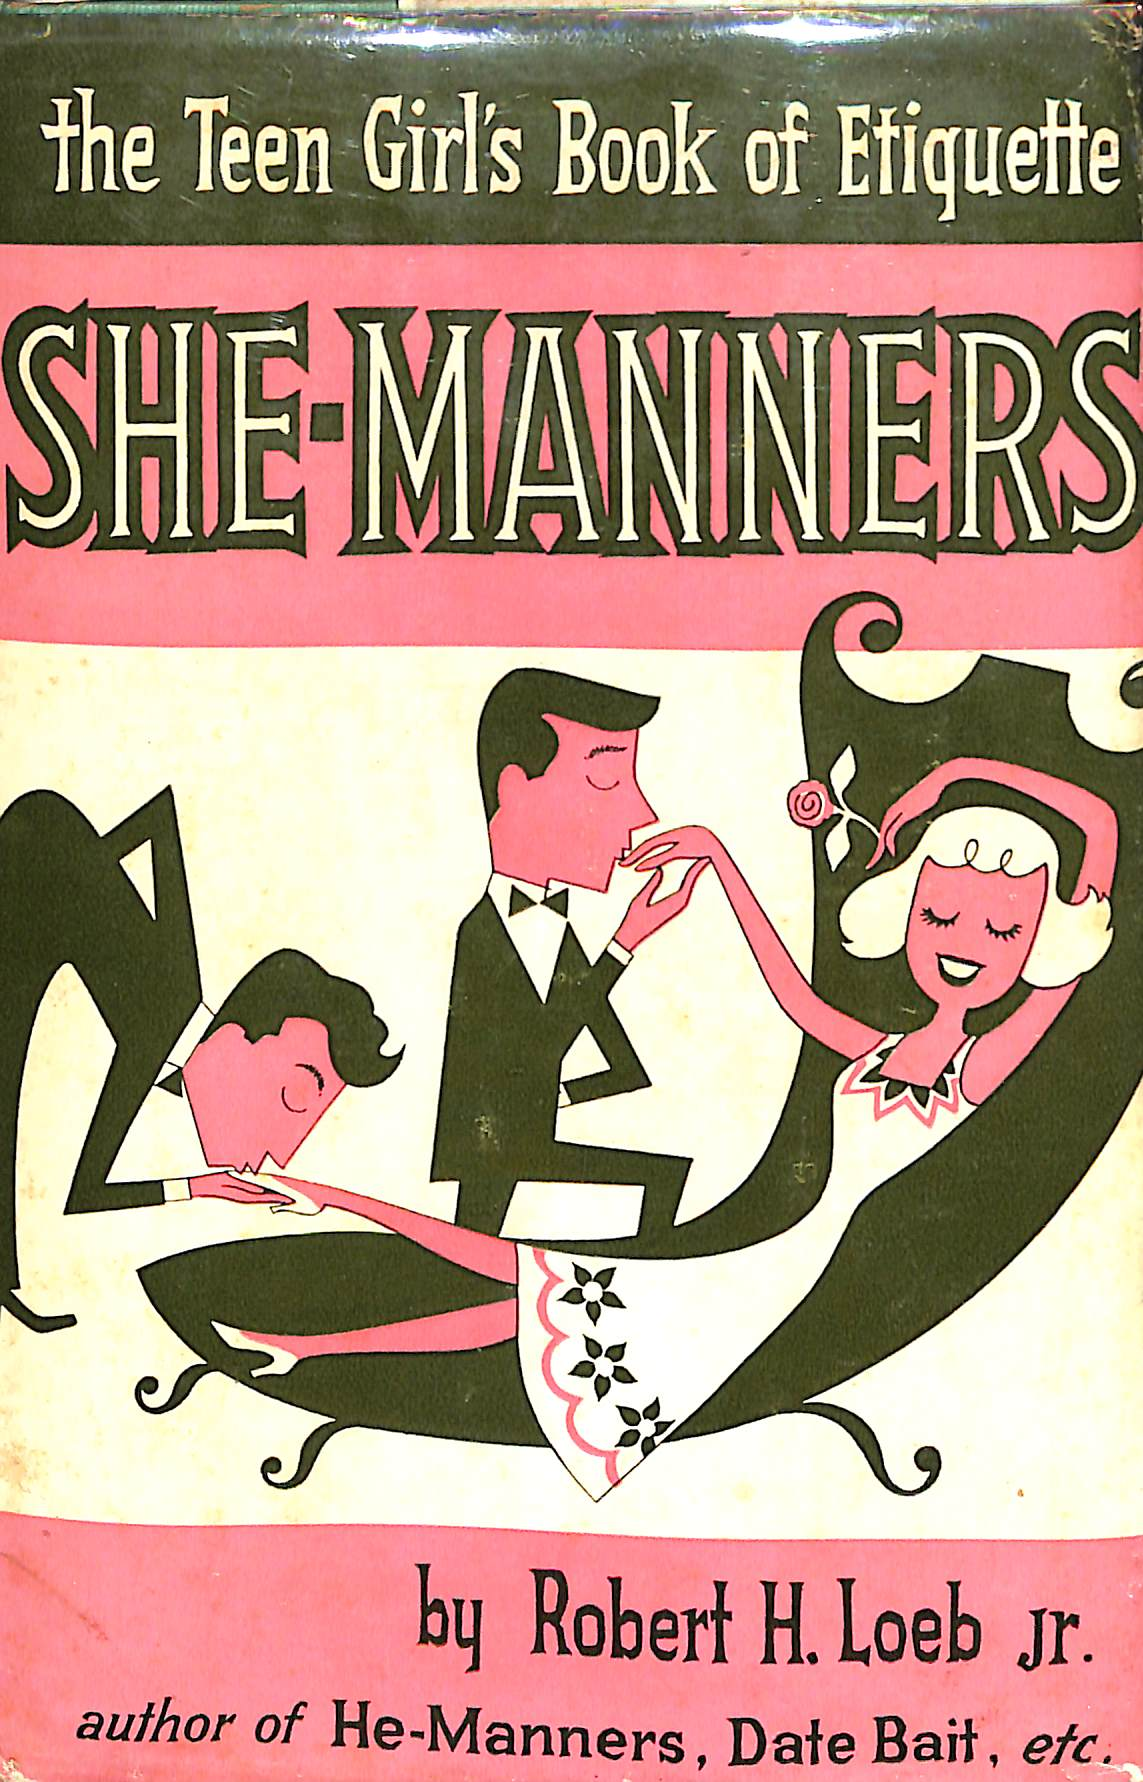 She-Manners: The Teen Girl's Book of Etiquette by Robert H. Loeb Jr.